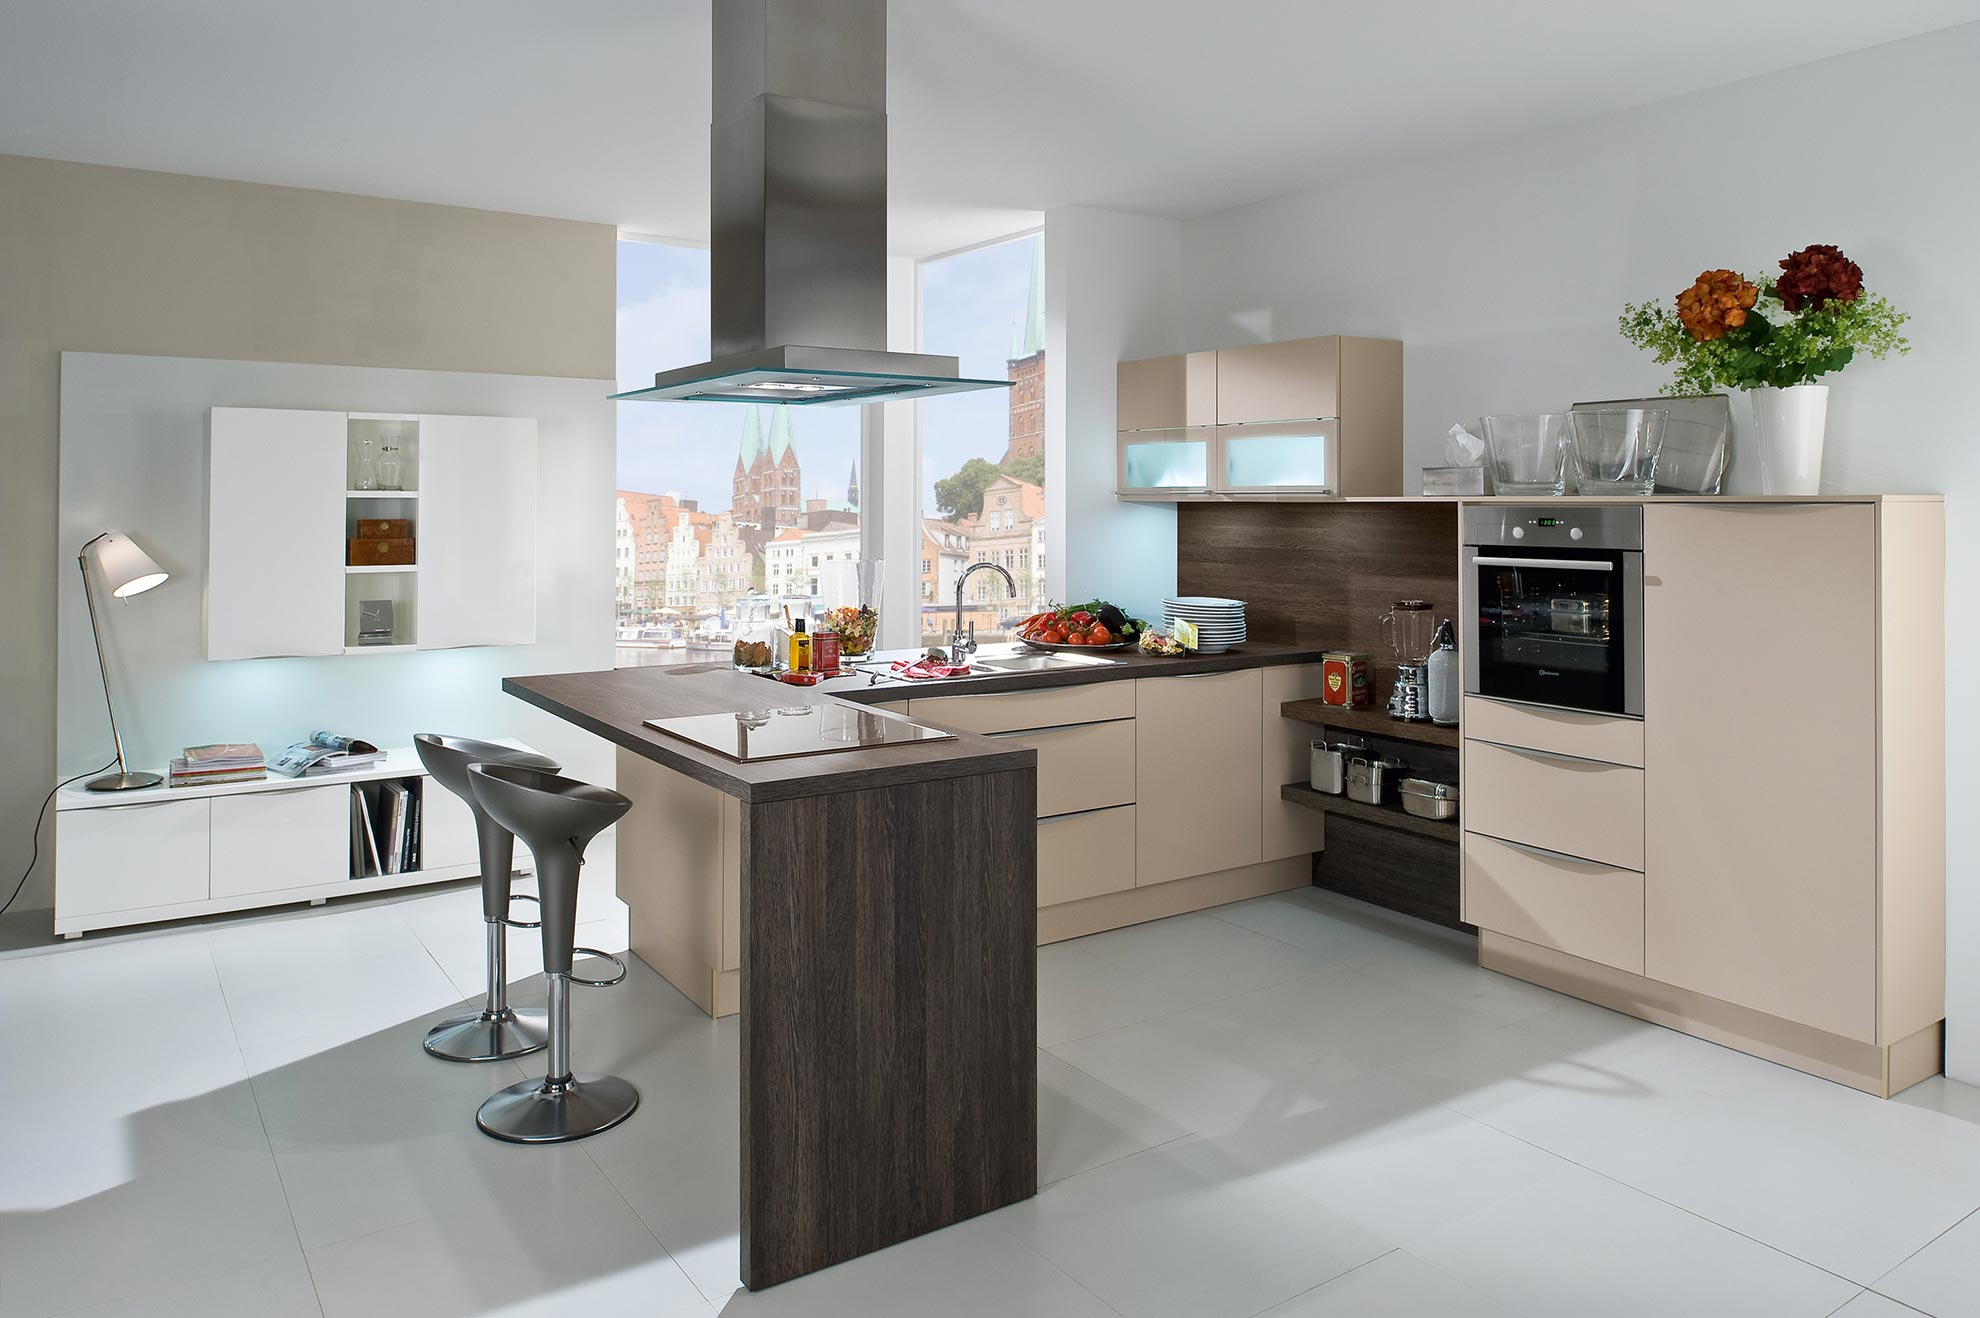 Kitchens bedford bedfordshire fitted kitchen installation - Images of kitchens ...